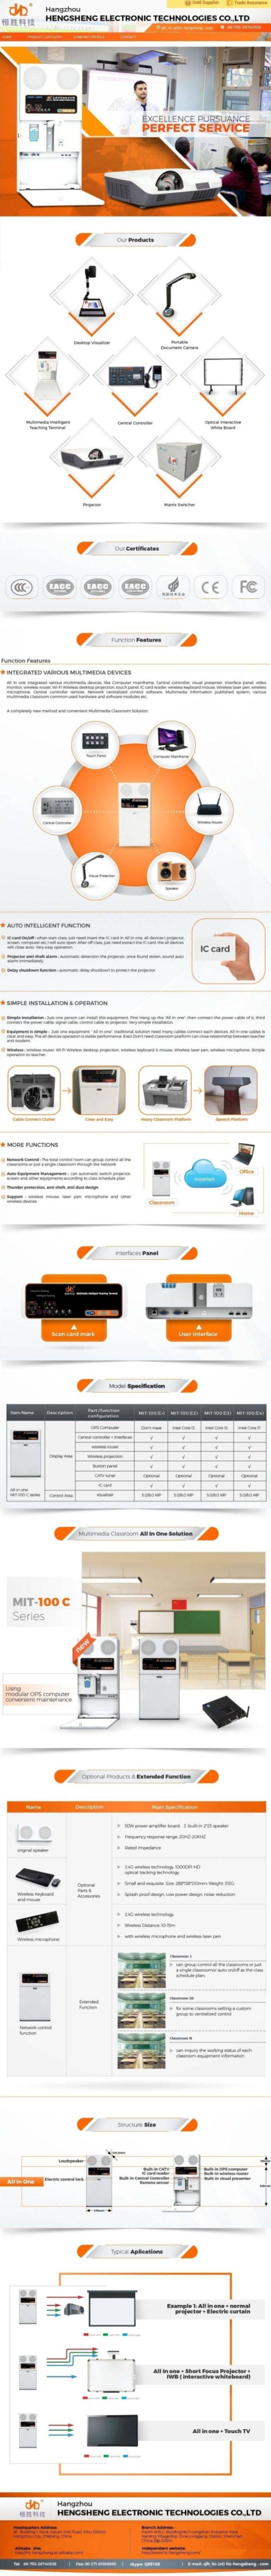 Smart Classroom All In One Solution Multimedia Intelligent Teaching Terminal